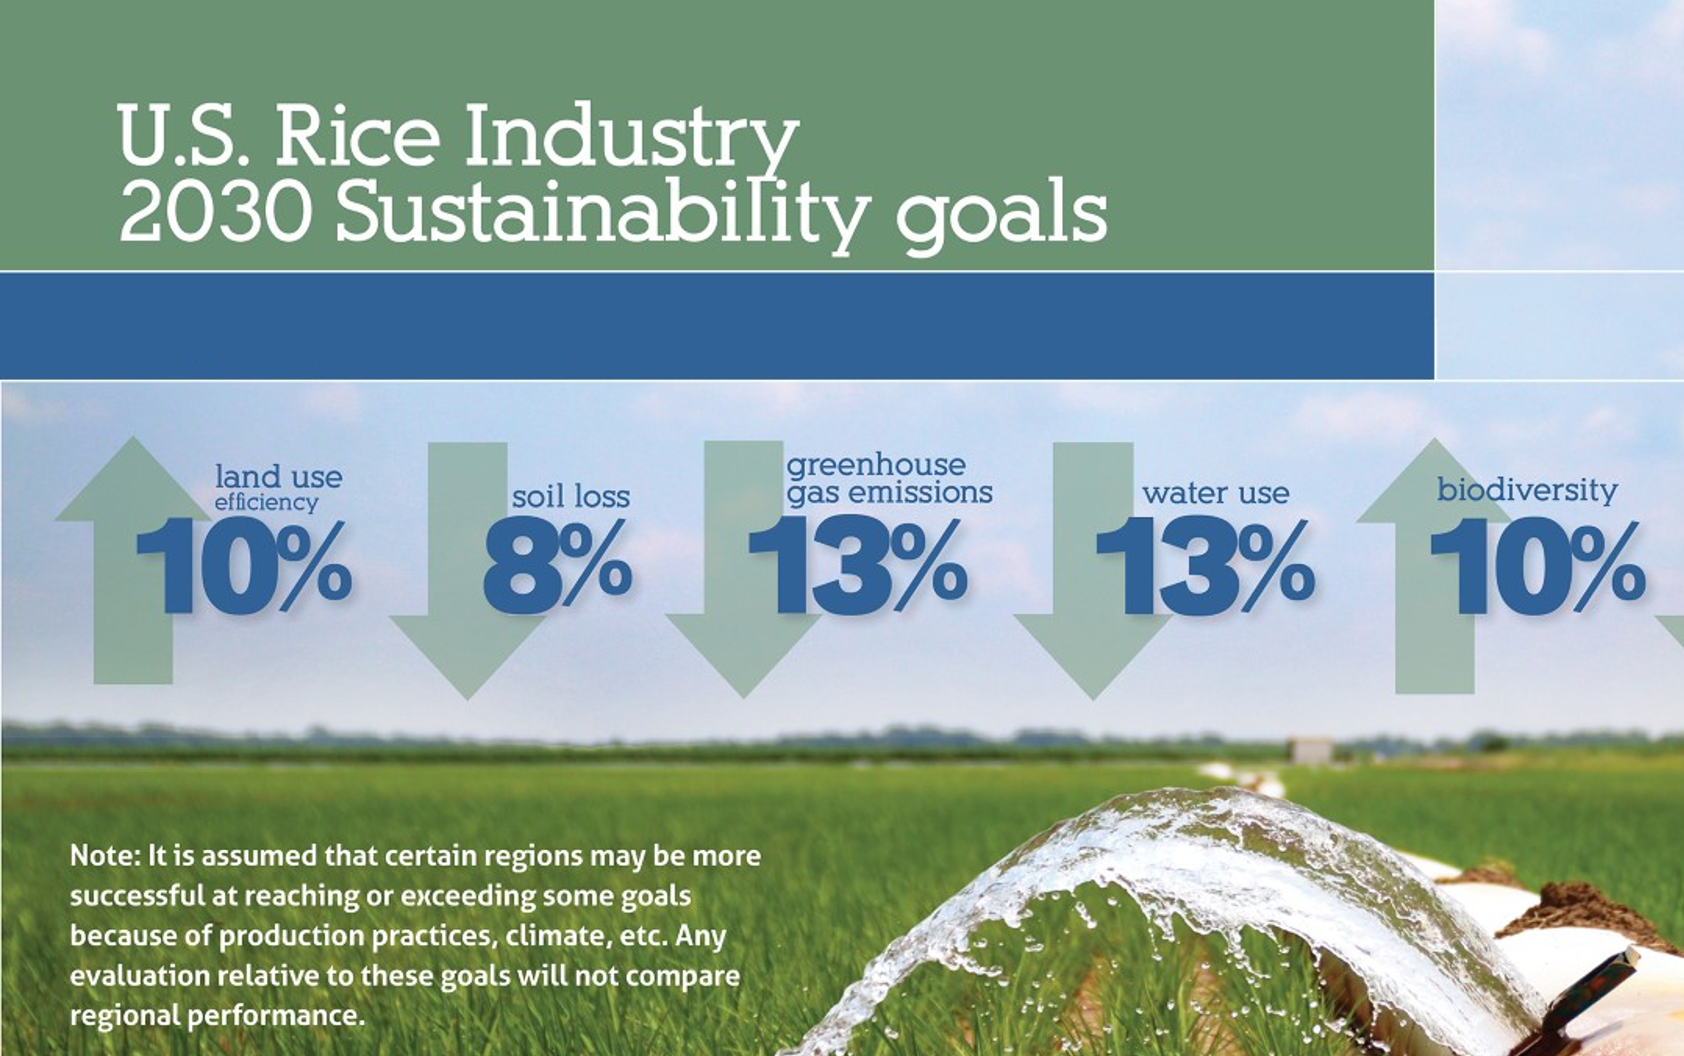 Sustainability graphic with 2030 rice industry goals shows water flowing from polypipe onto green rice field